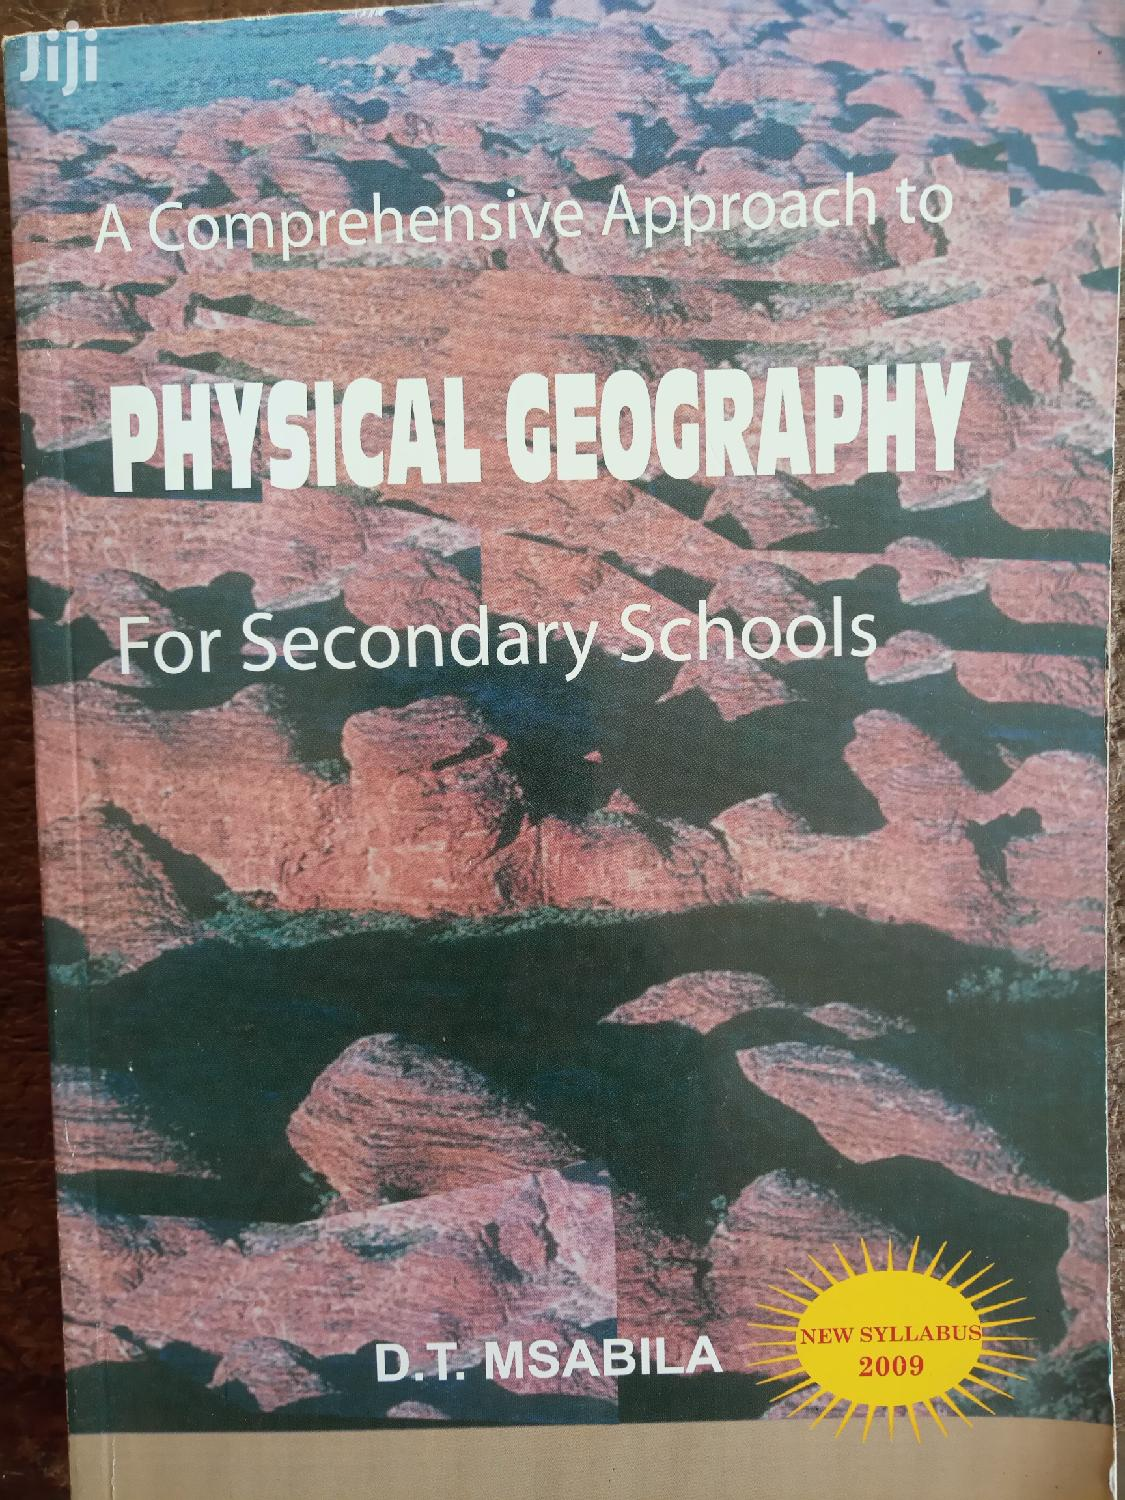 Archive: MSABILA Physical Geography